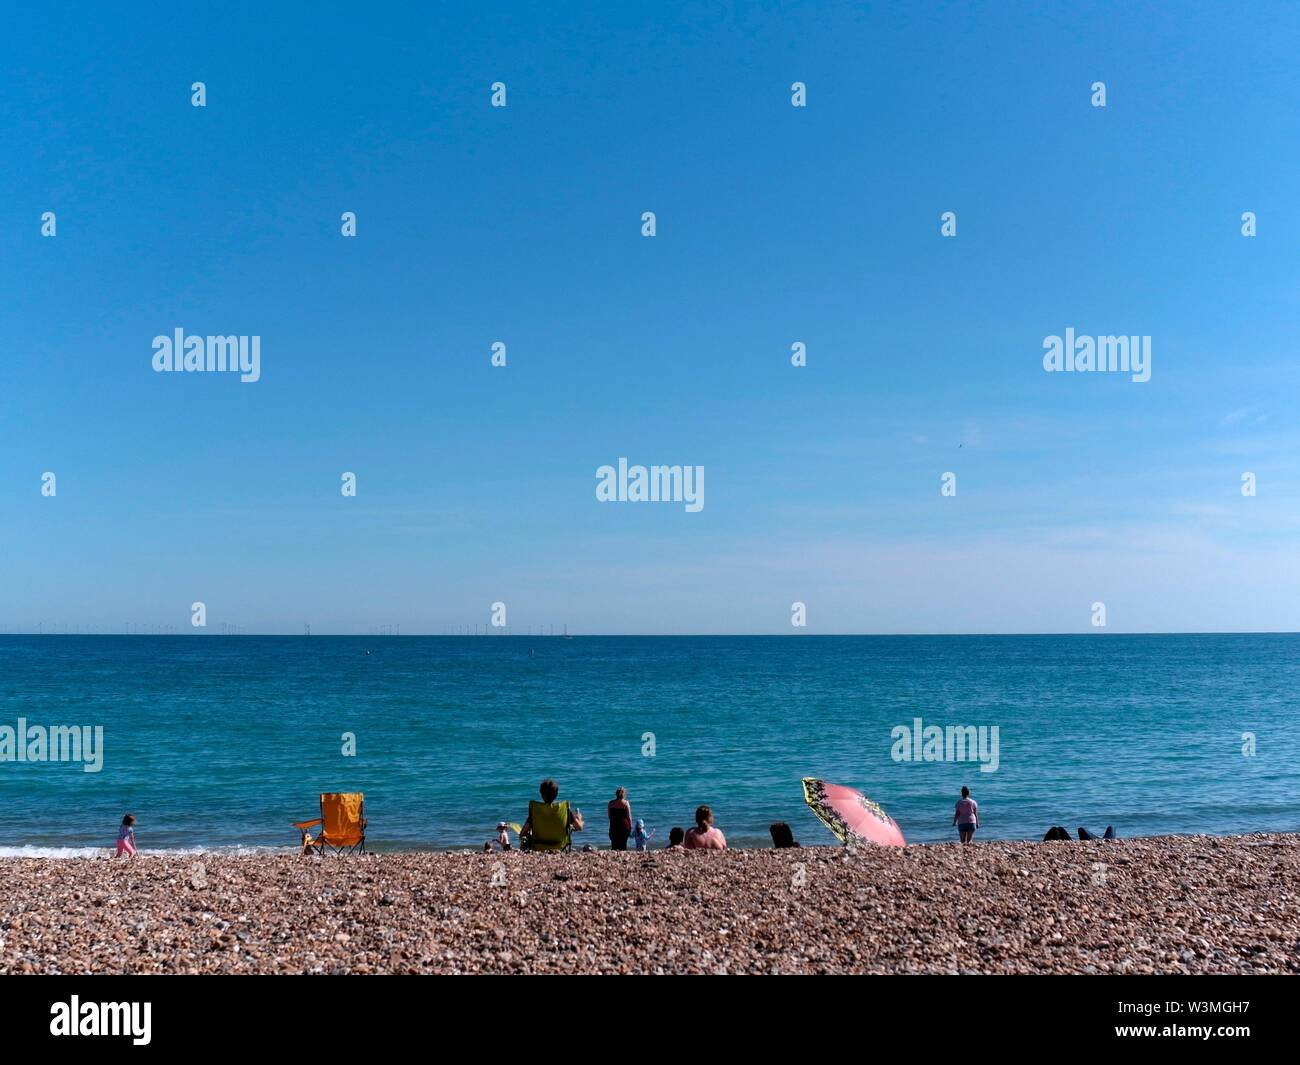 AJAXNETPHOTO. JUNE, 2019. WORTHING, ENGLAND. - BLUE SKY BLUE SEA DAY - AT THE SEASIDE, LOOKING SOUTH OVER THE ENGLISH CHANNEL.PHOTO:JONATHAN EASTLAND/AJAX REF:GXR191607_7897 Stock Photo